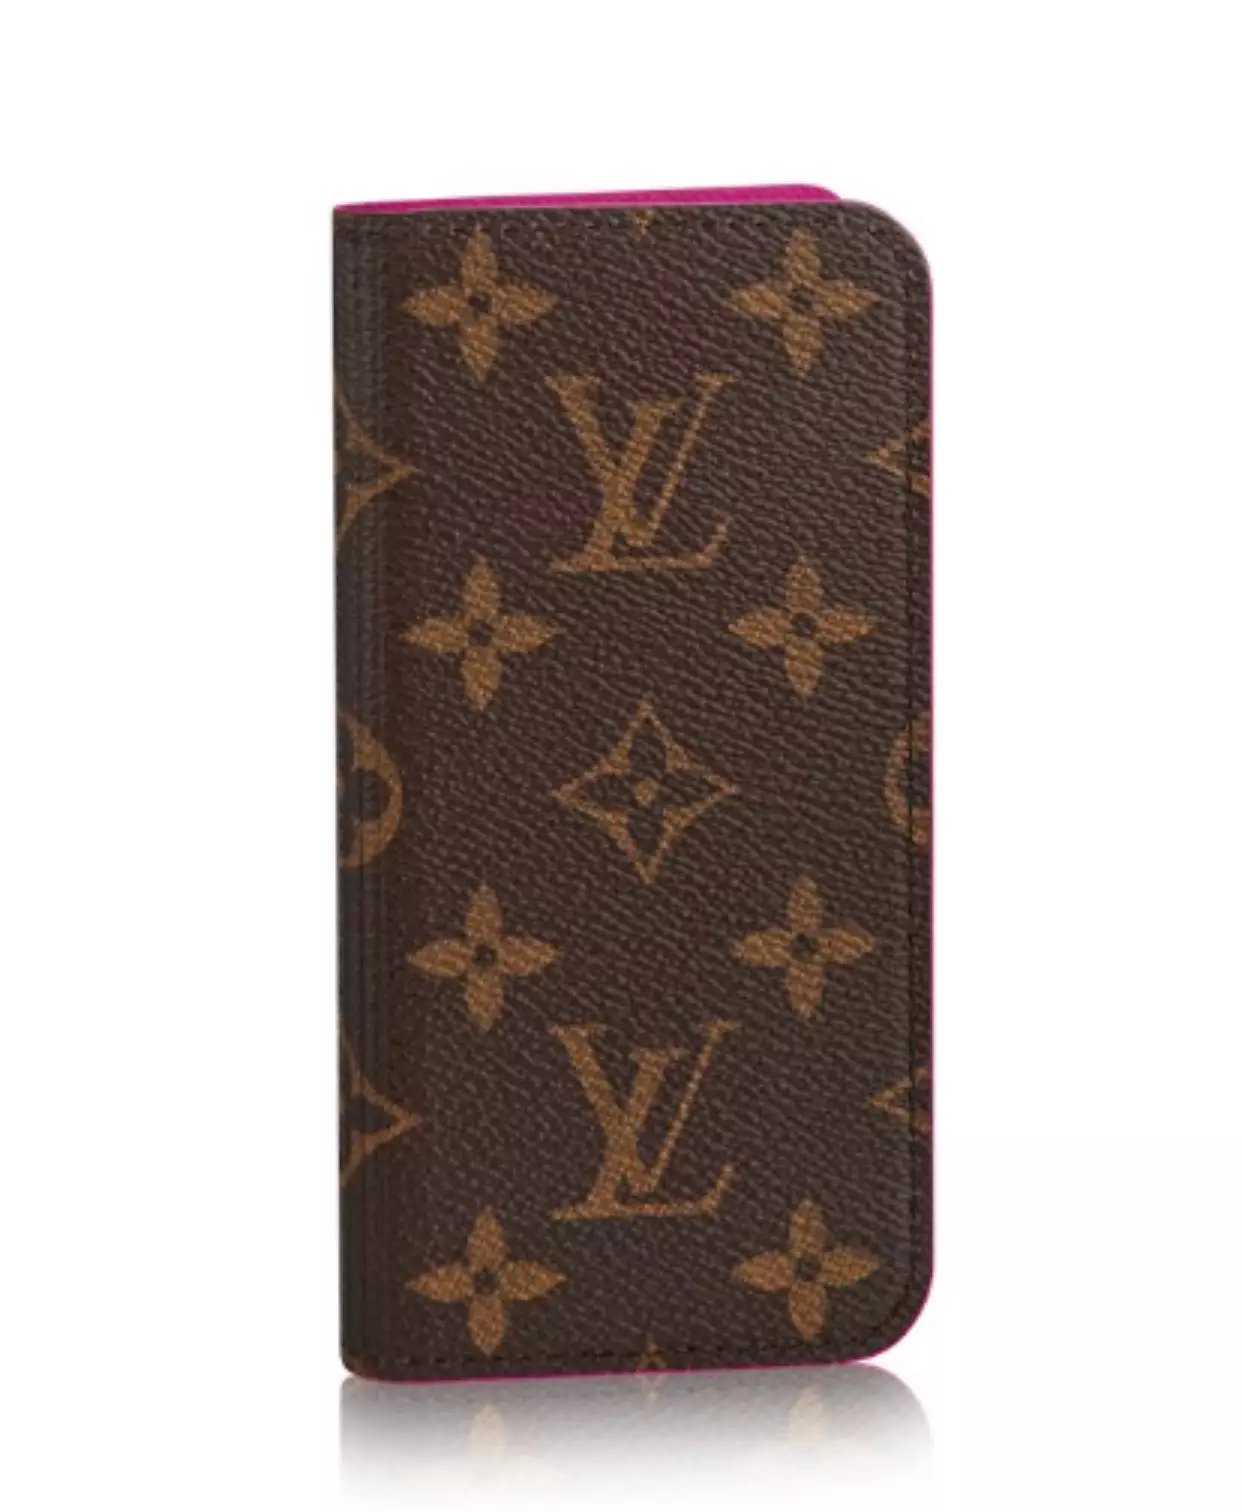 iphone cover 8 Plus iphone 8 Plus in case Louis Vuitton iphone 8 Plus case cases for the iphone apple iPhone 8 Plus covers and cases iphone s cases cell phone case creator make custom iphone case iPhone 8 Plus cases cool designs